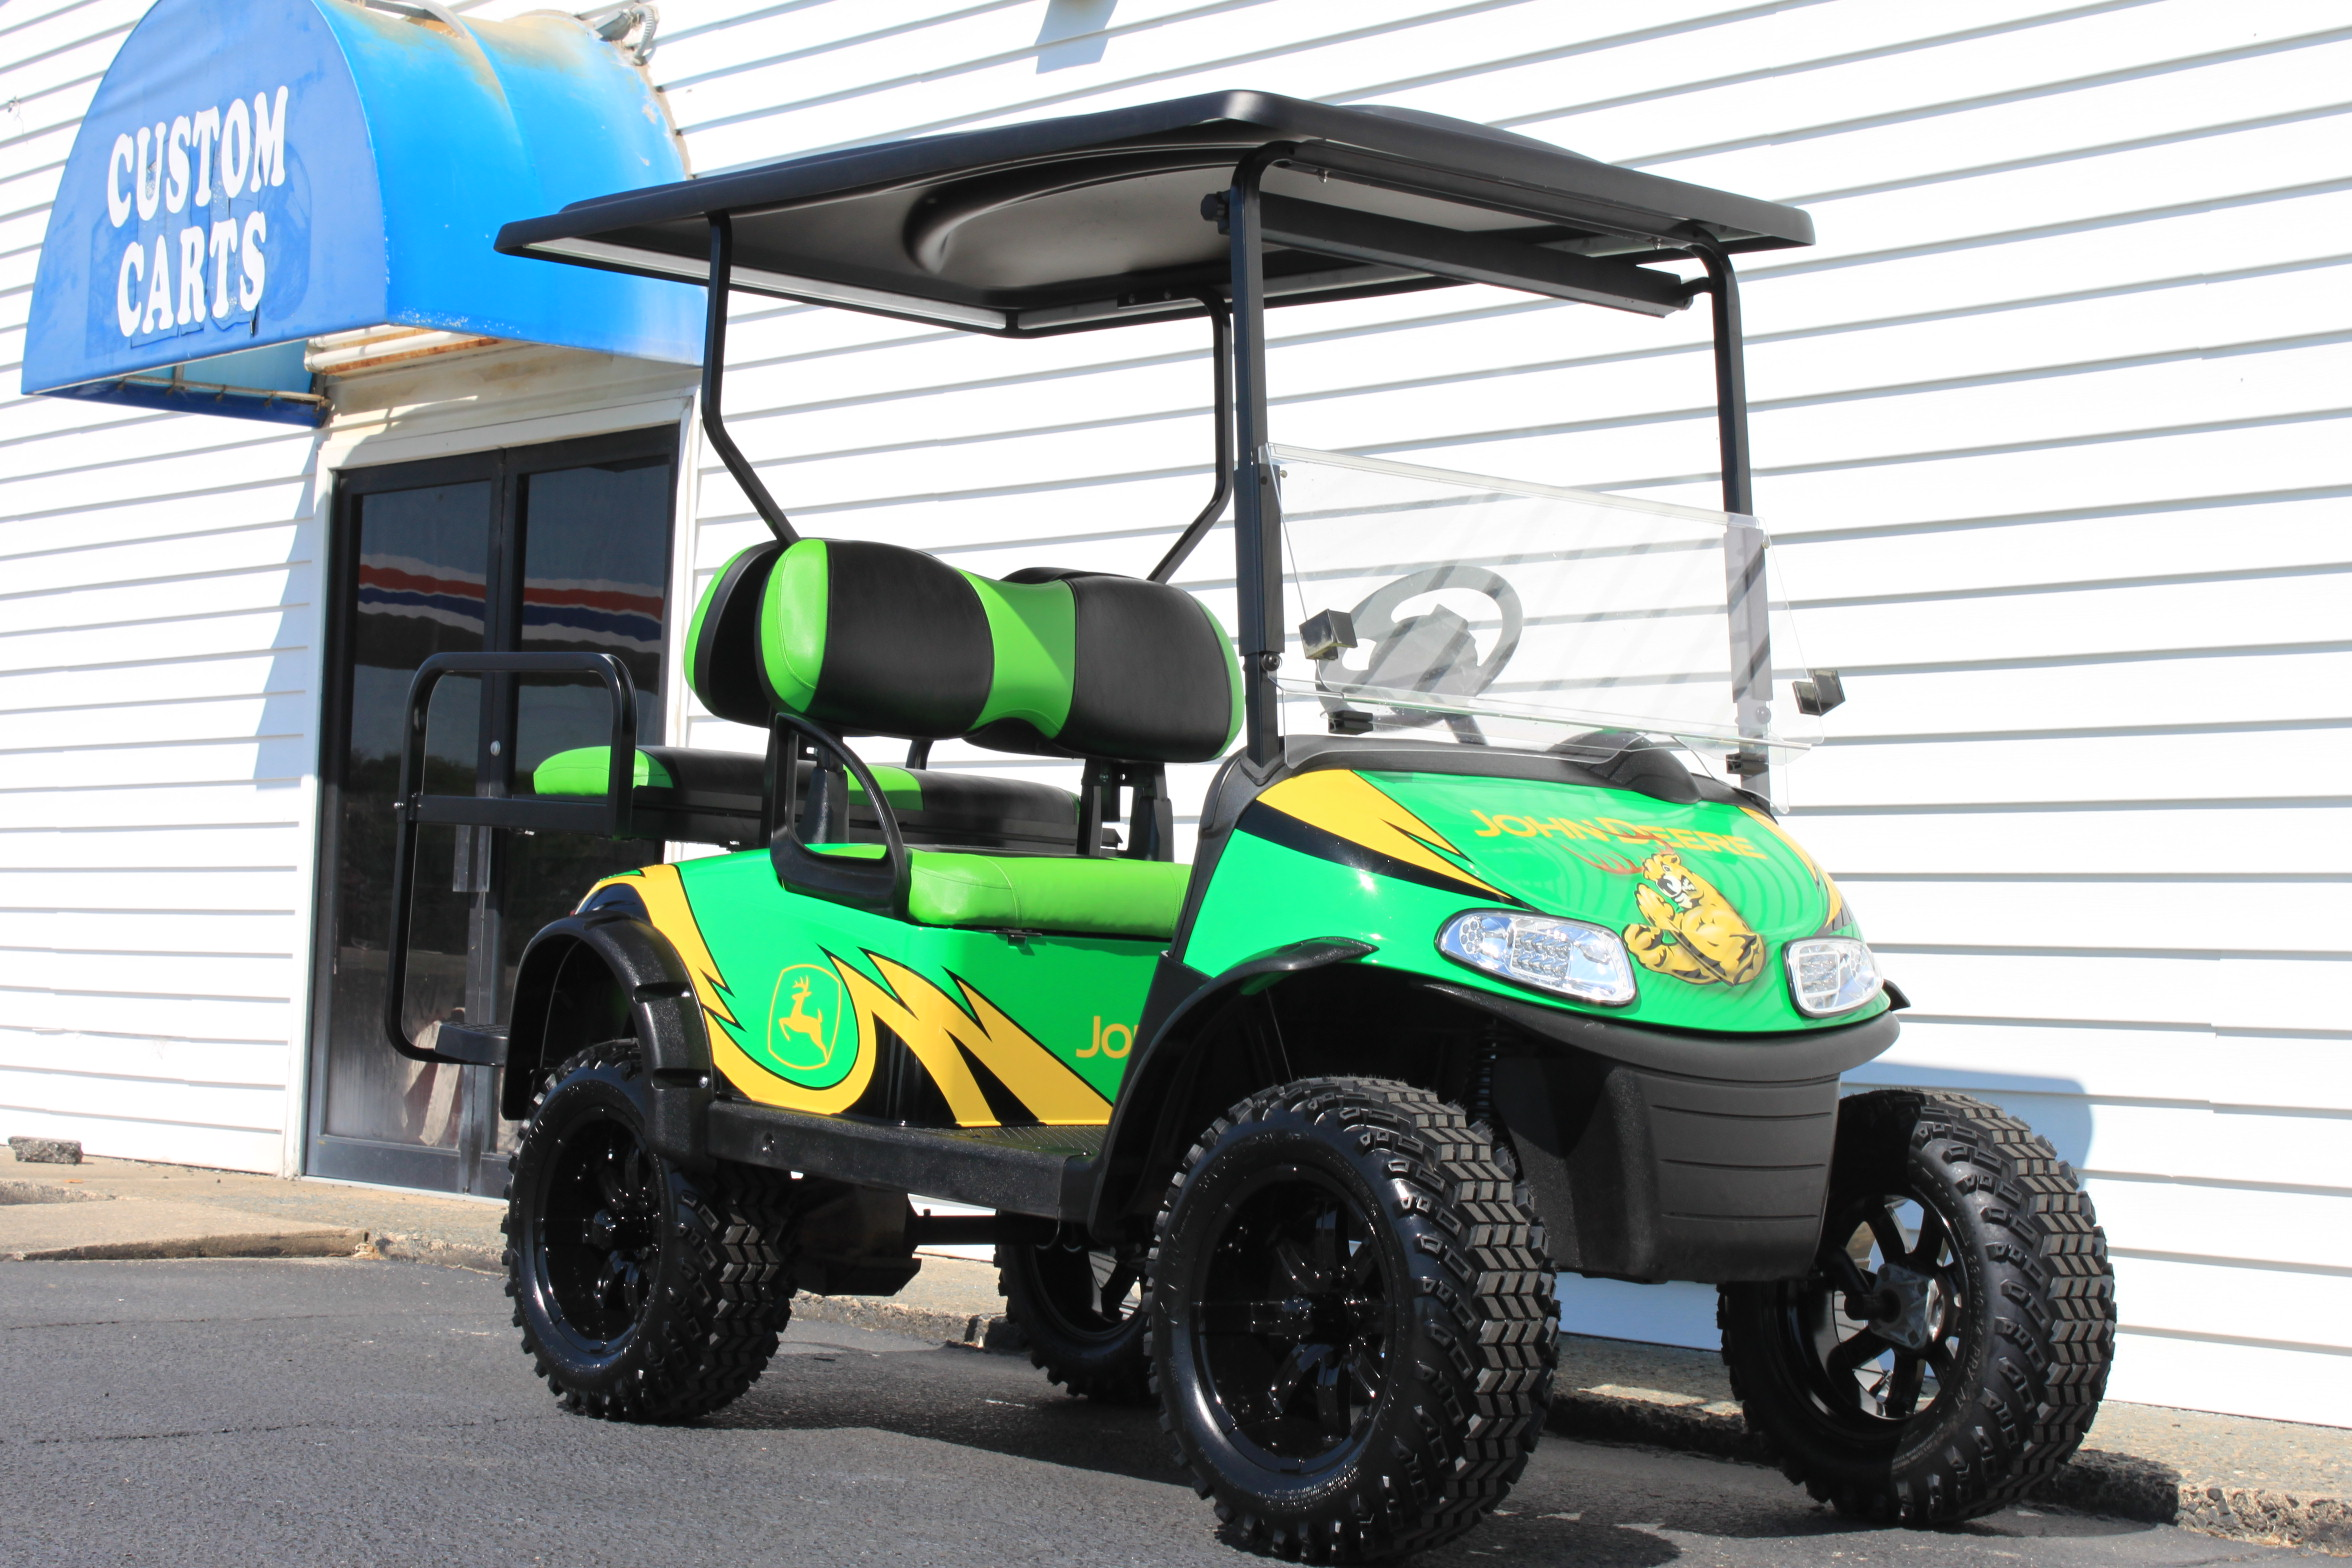 STOCK# 5408276, 2016 E-Z-GO RXV, 48 VOLT GOLF CART